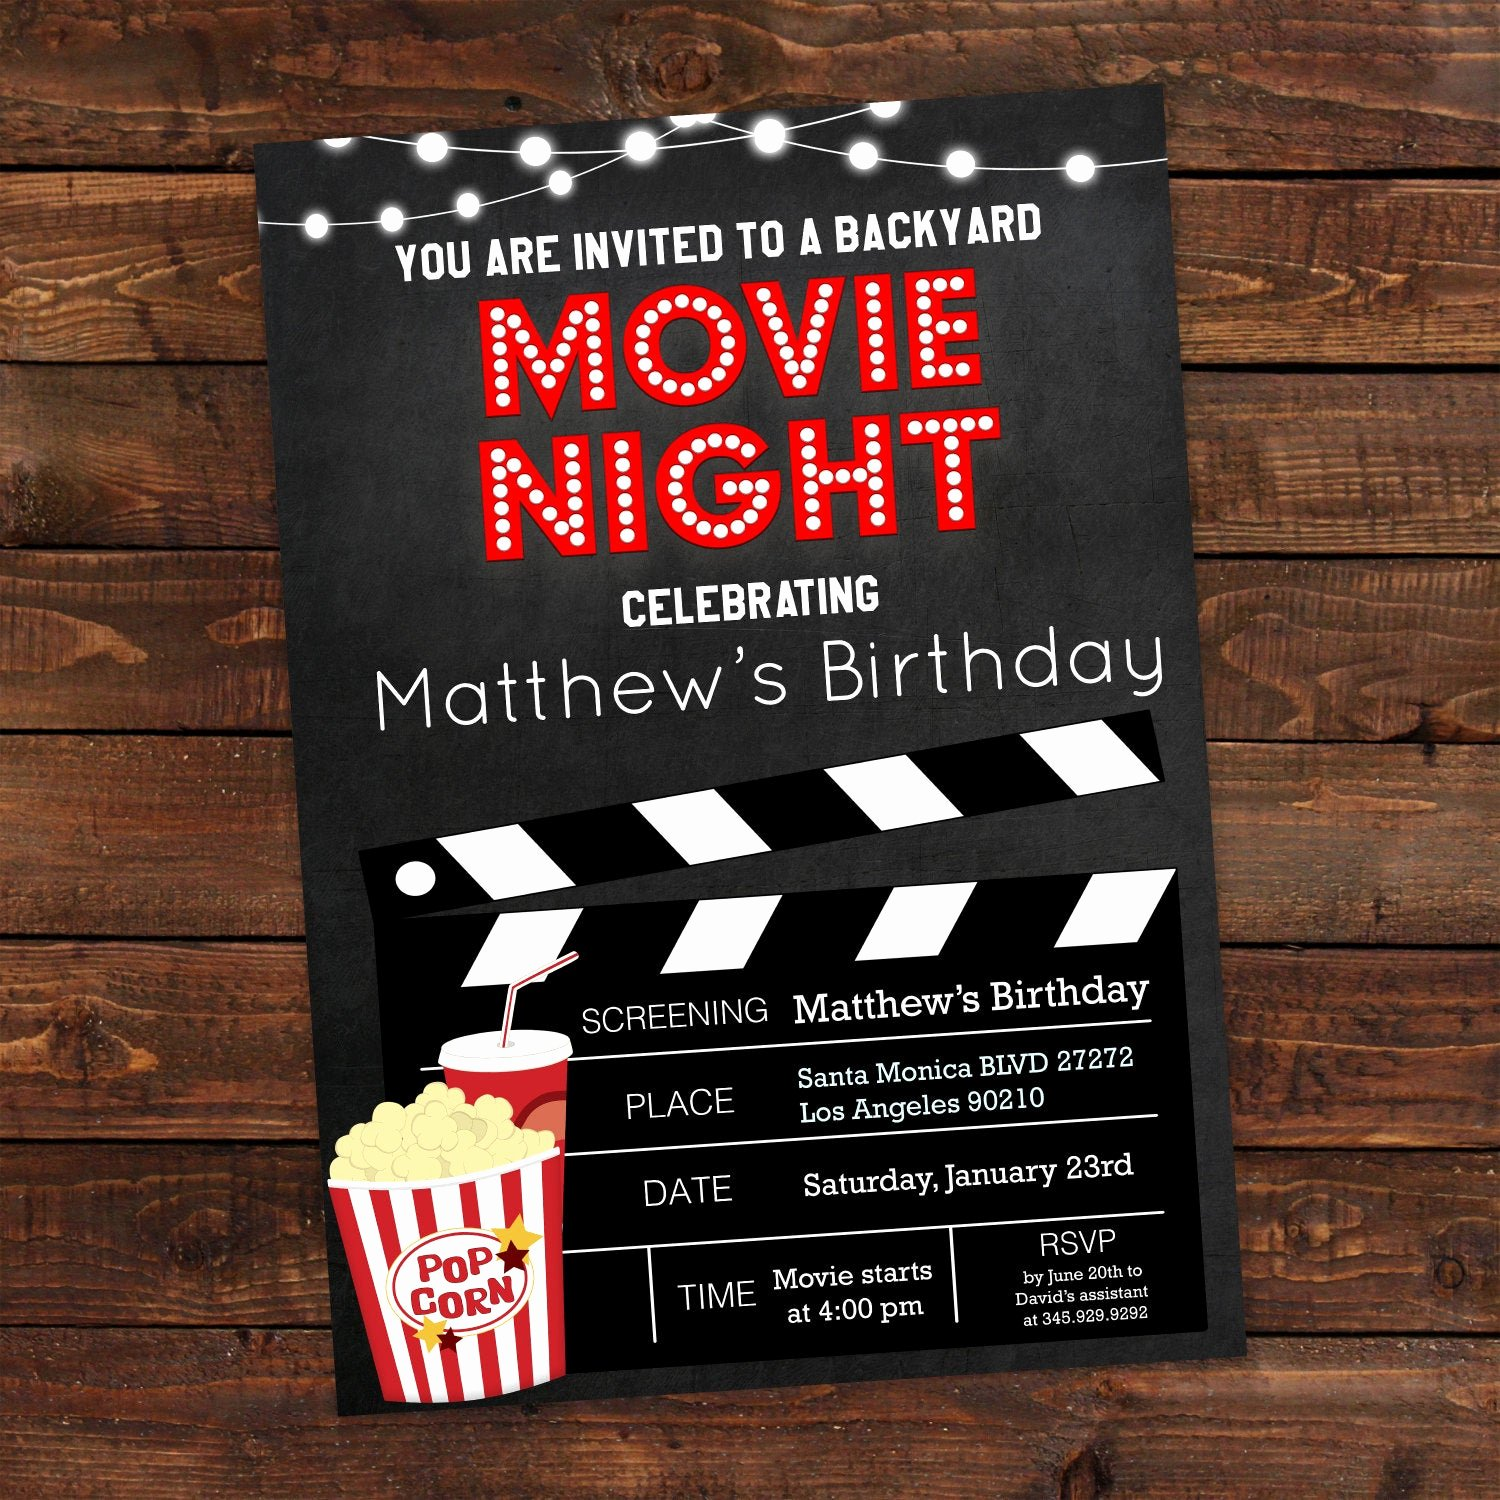 Printable Birthday Party Invitations Inspirational Printable Backyard Movie Night Party Invitation Movie Night